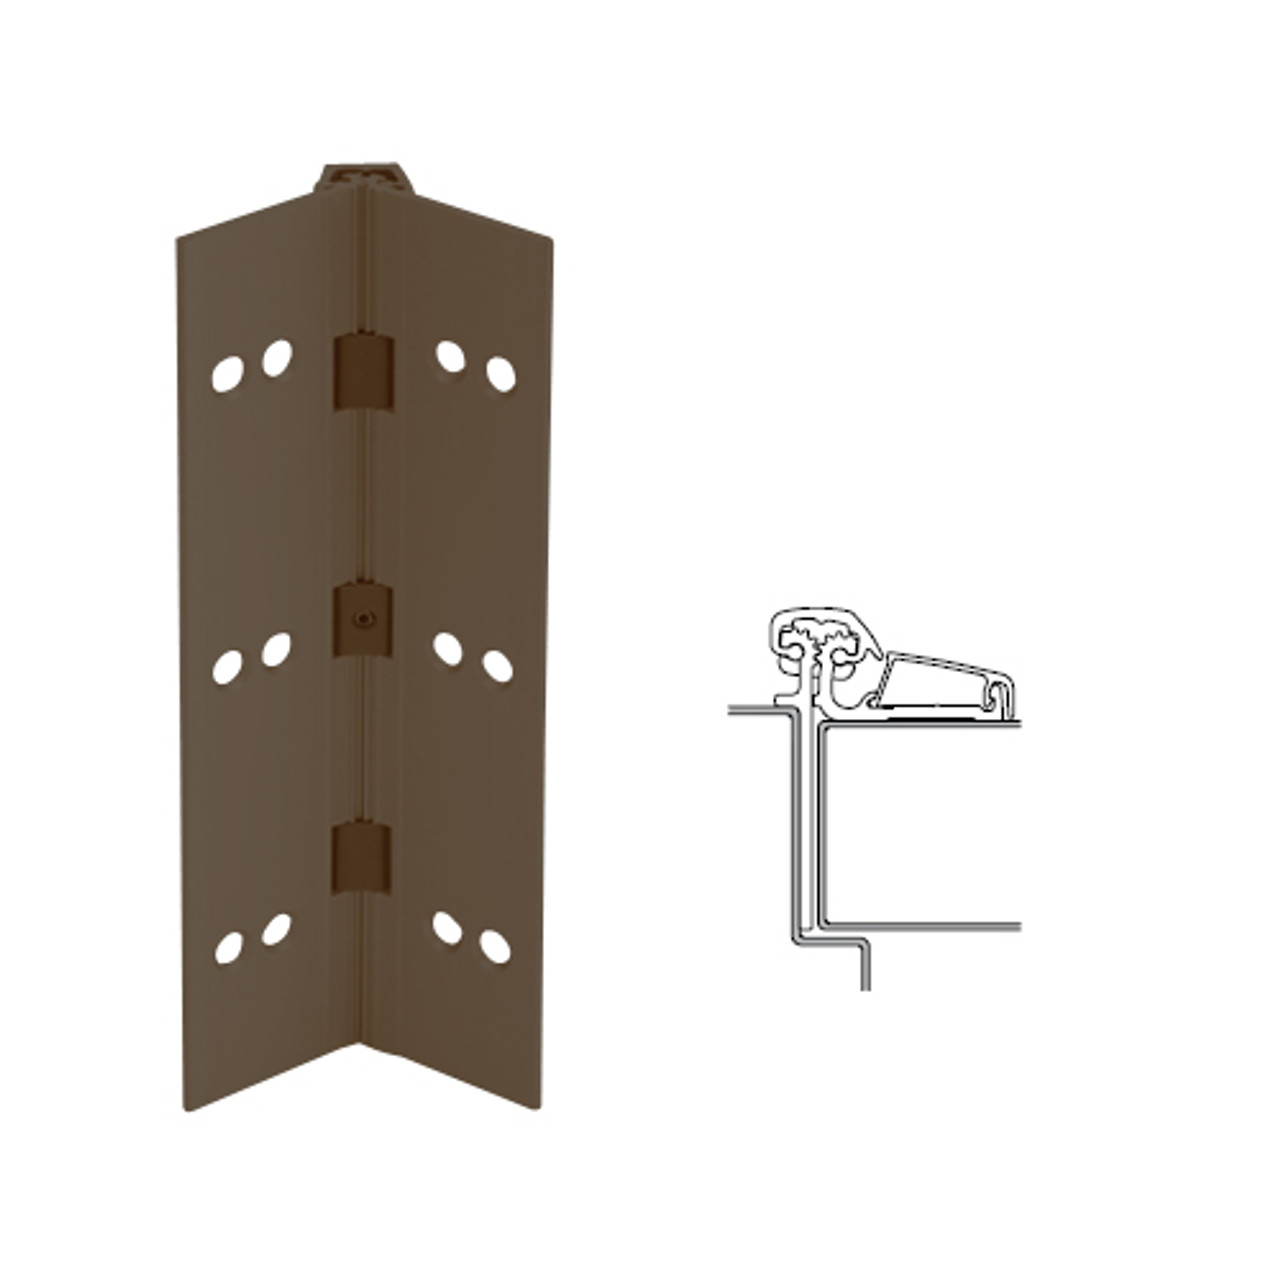 054XY-313AN-83-WD IVES Adjustable Half Surface Continuous Geared Hinges with Wood Screws in Dark Bronze Anodized